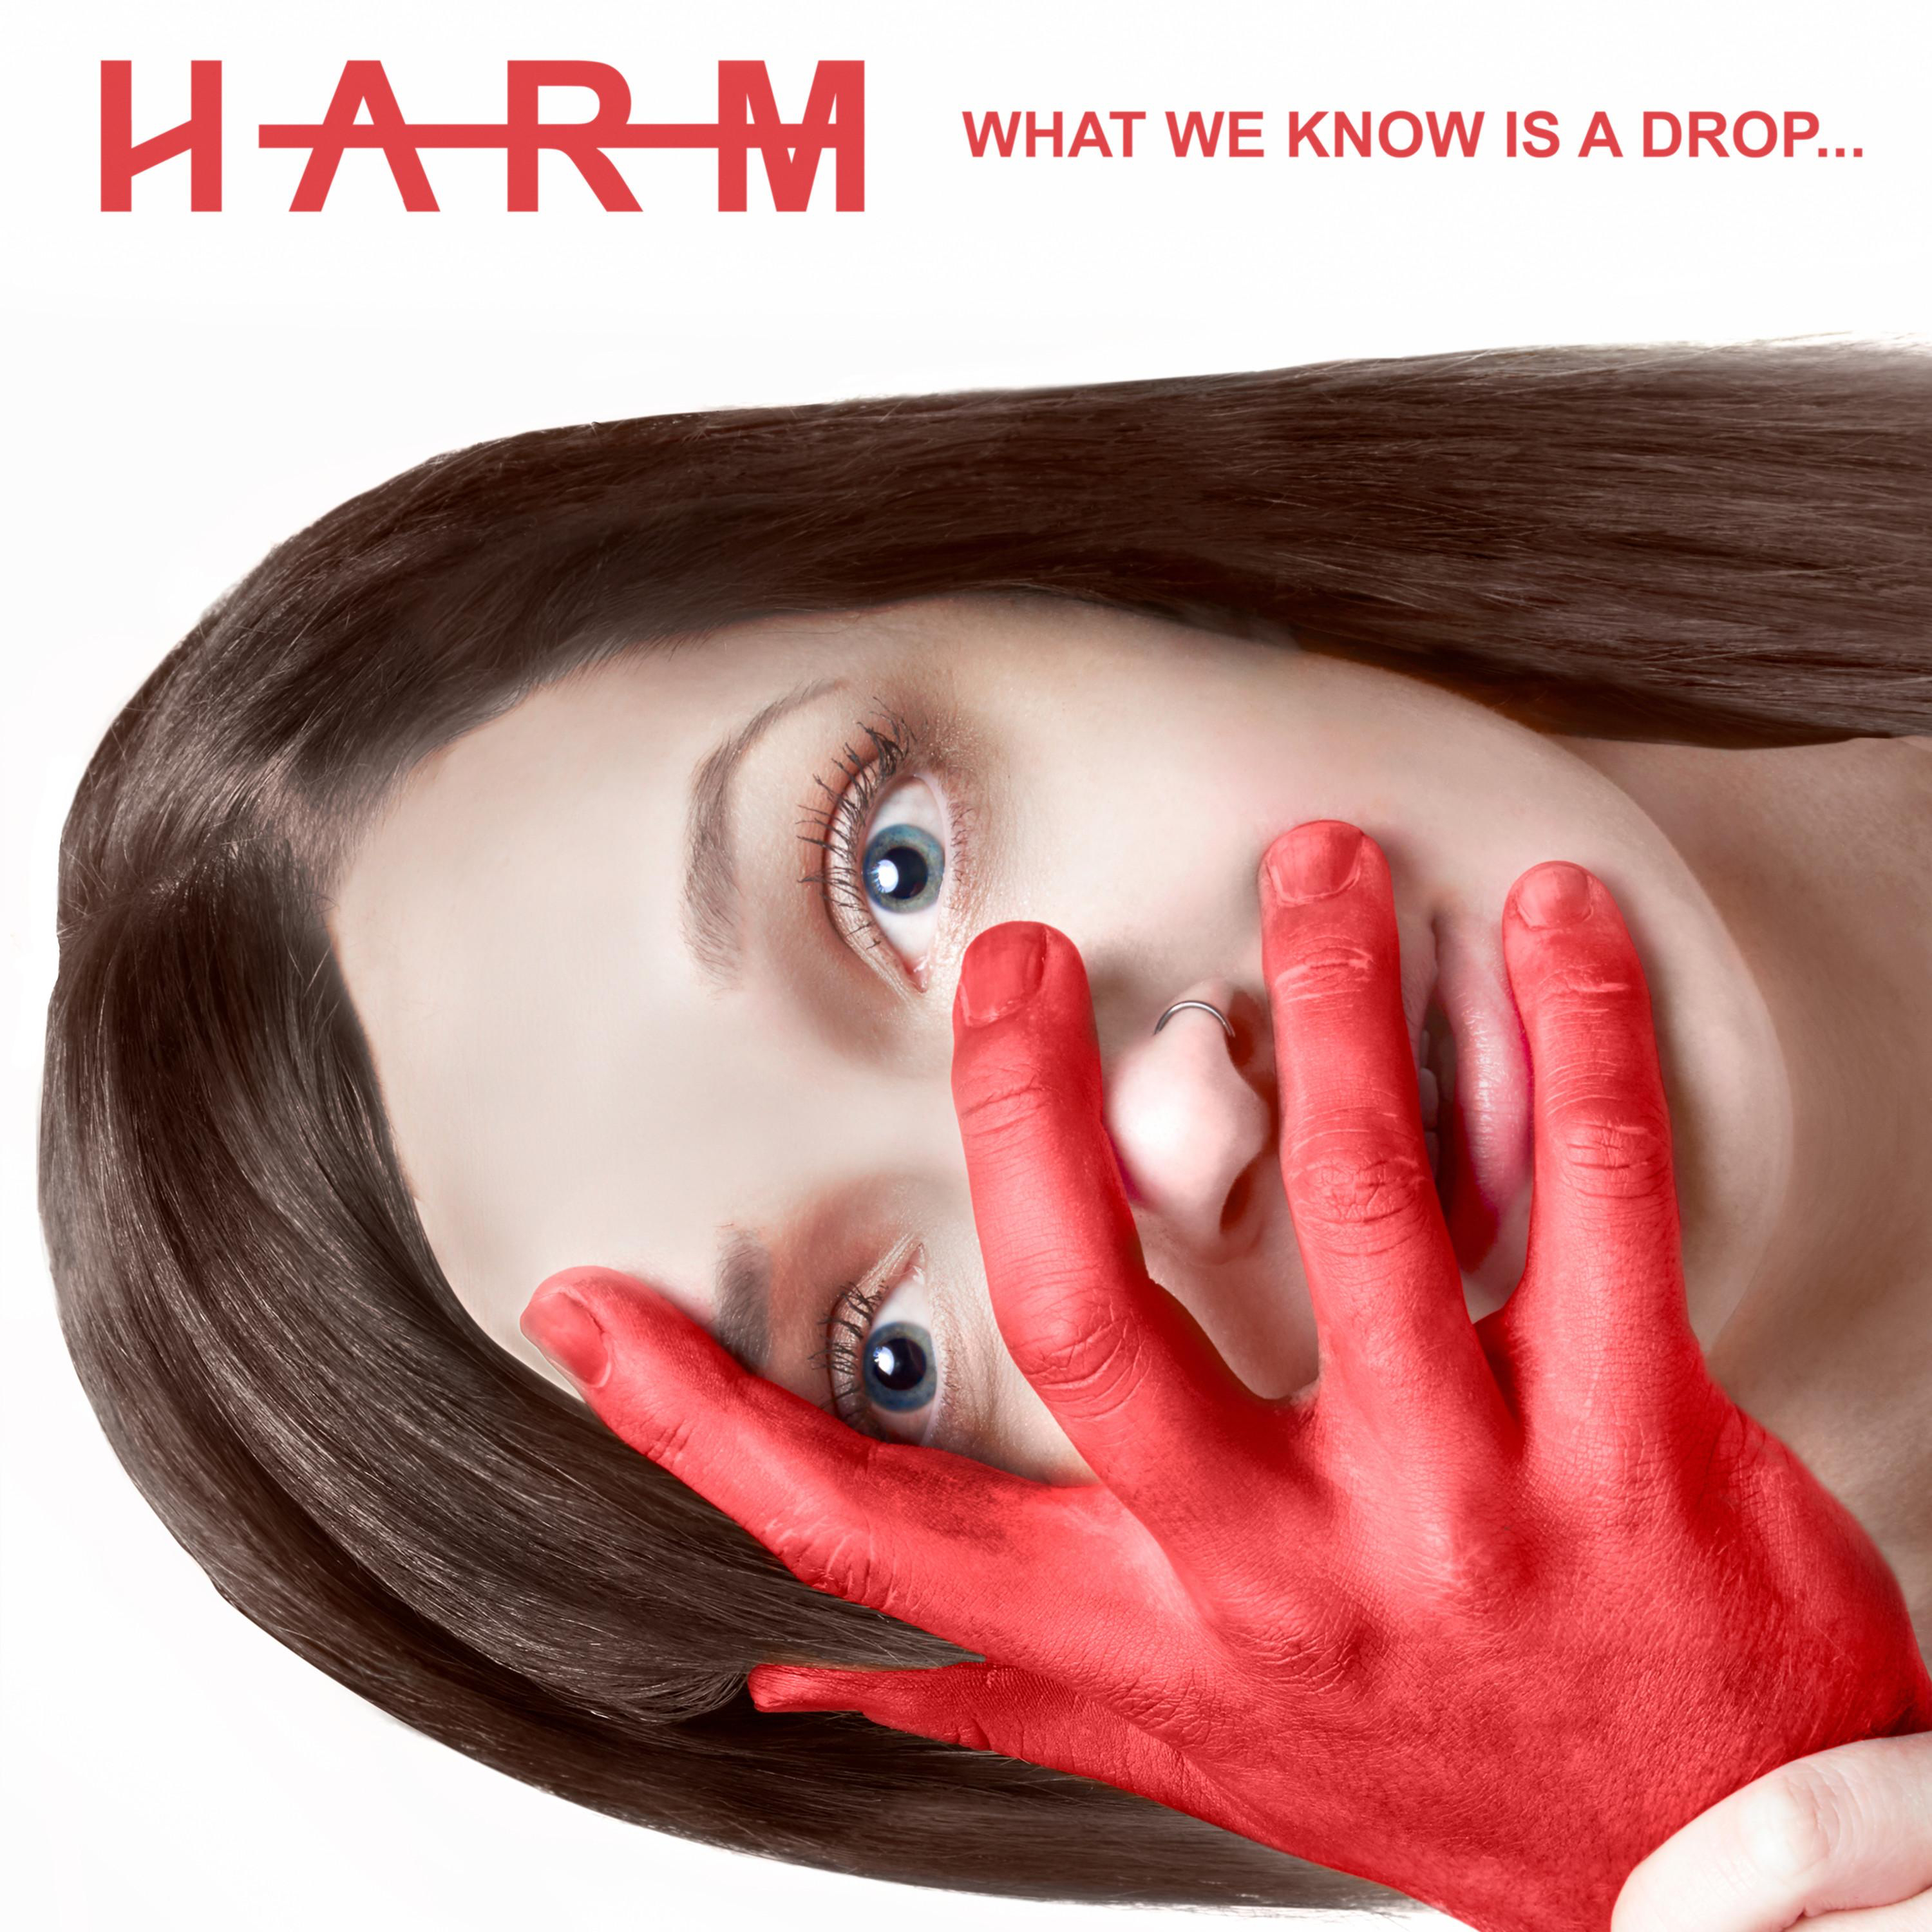 Harm - What We Know Is A Drop [EP] (2018)